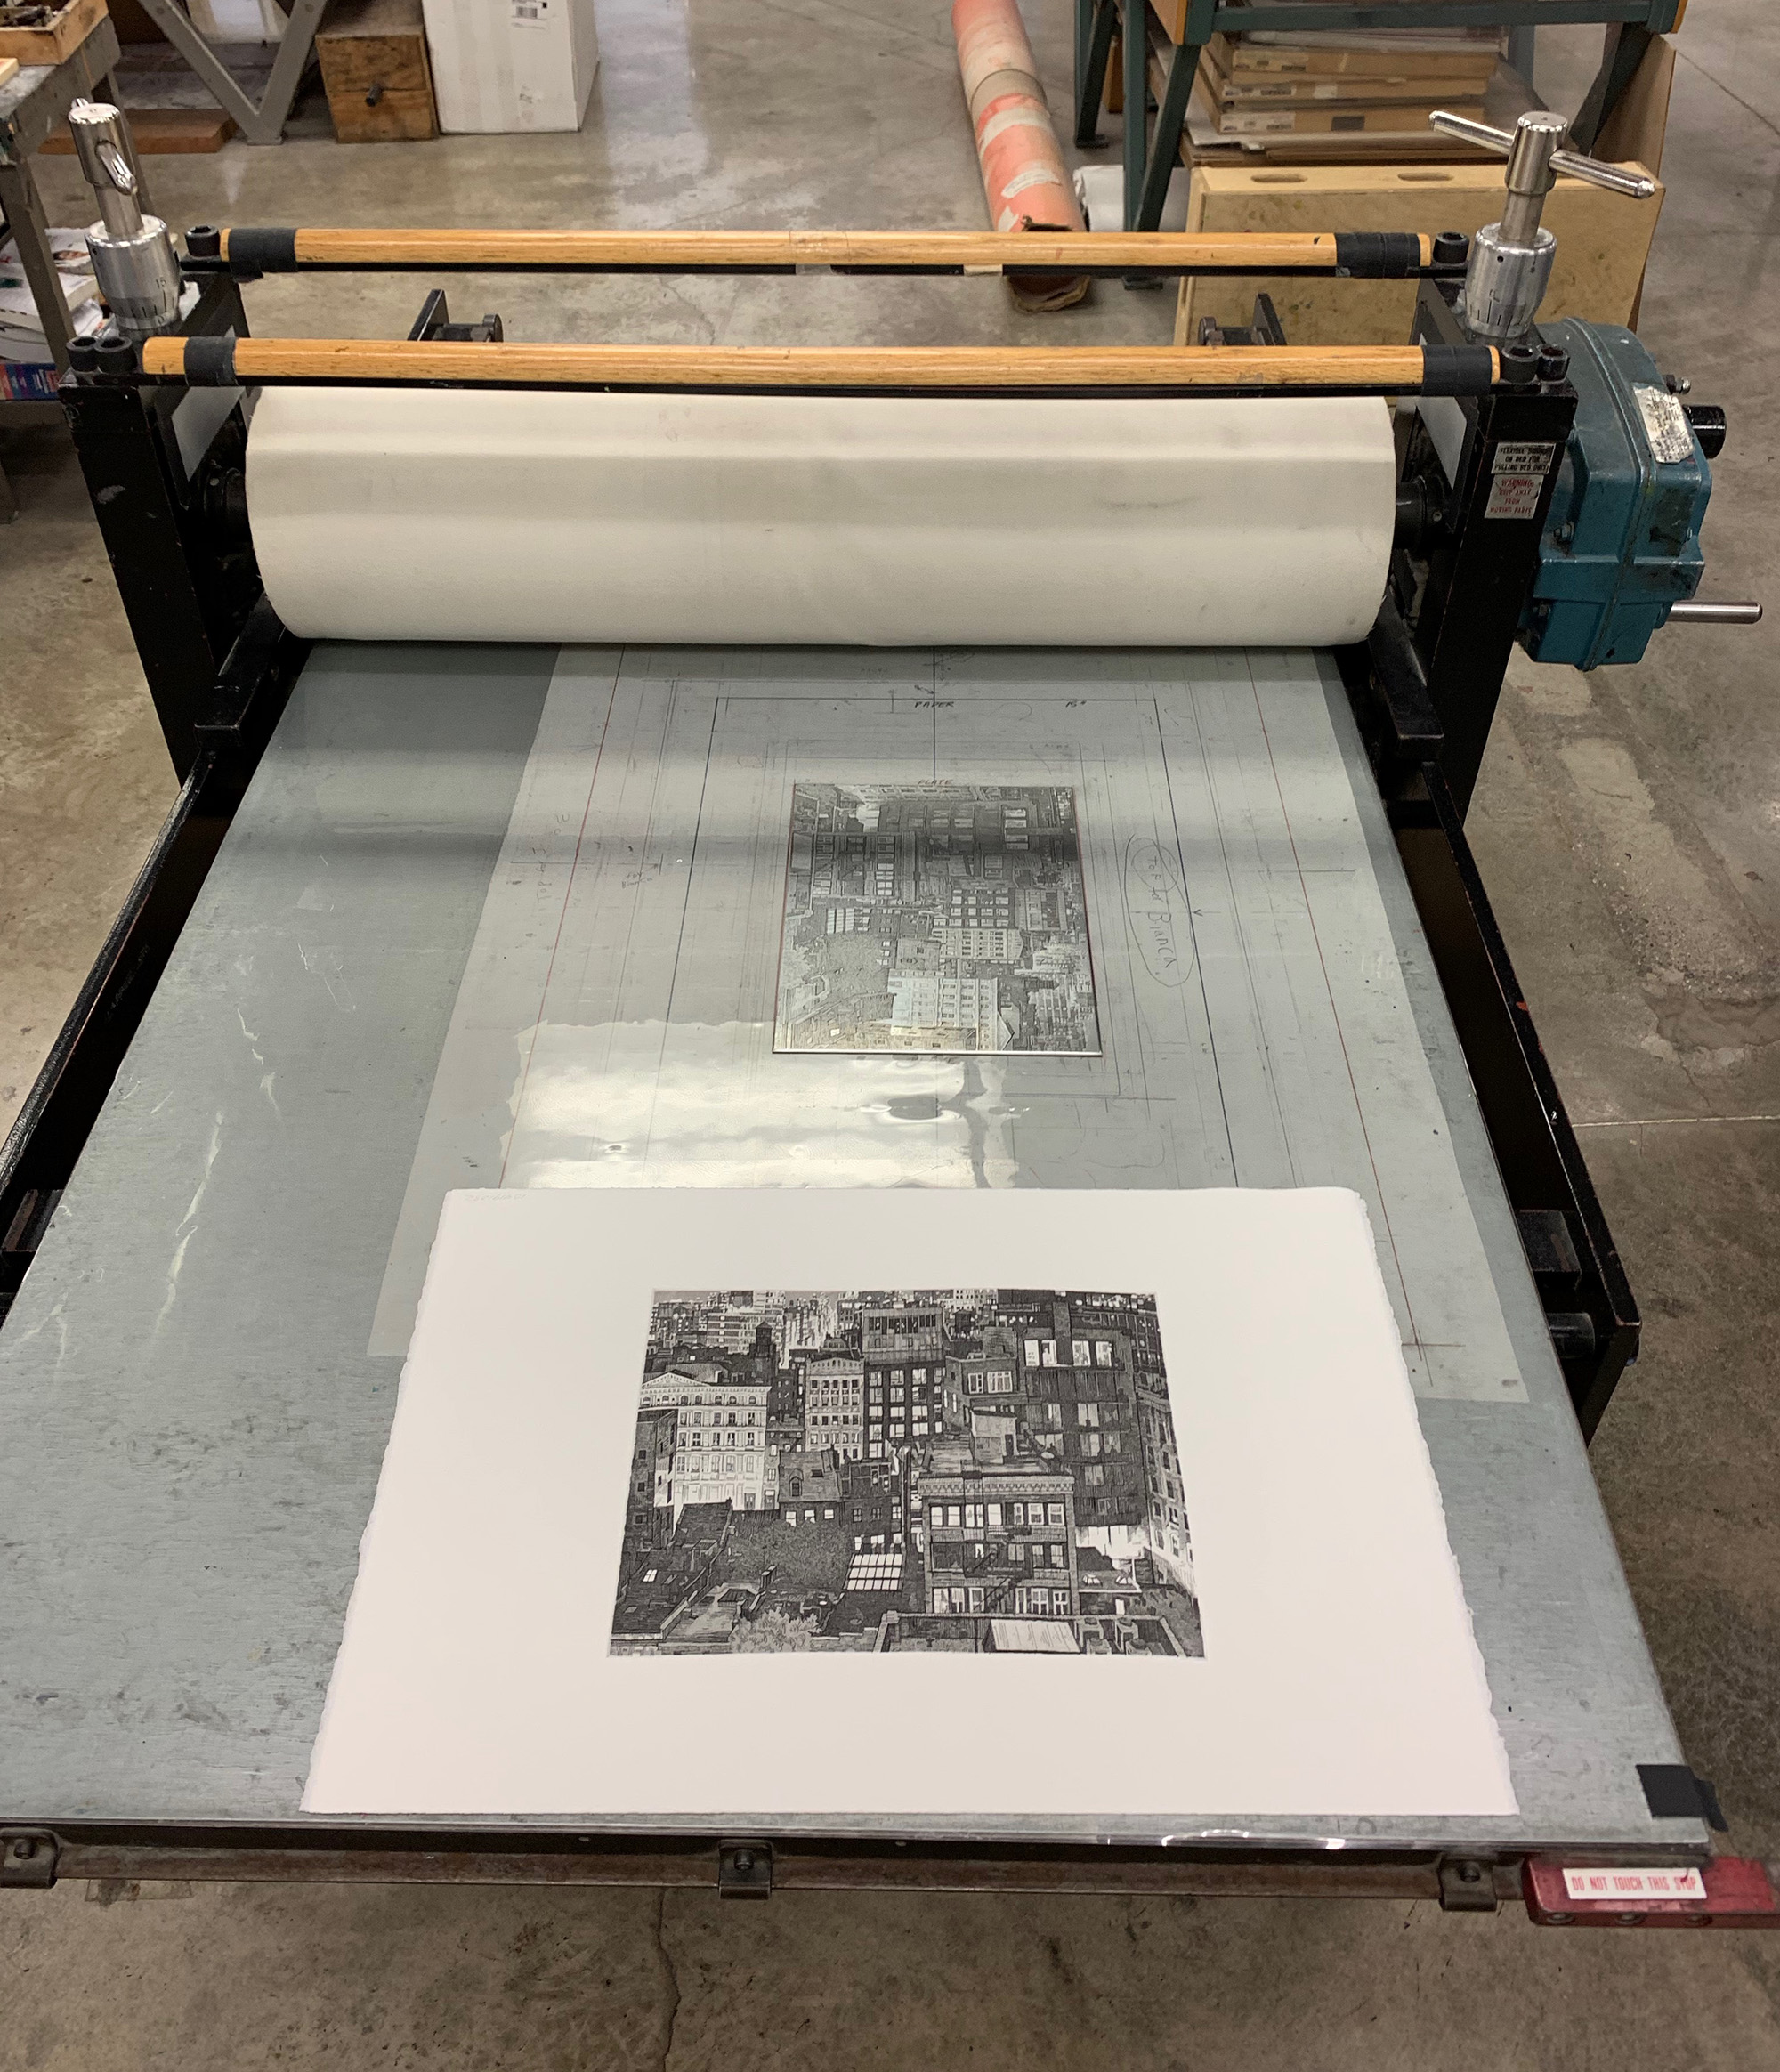 Print that bad boy on a big ol' press.